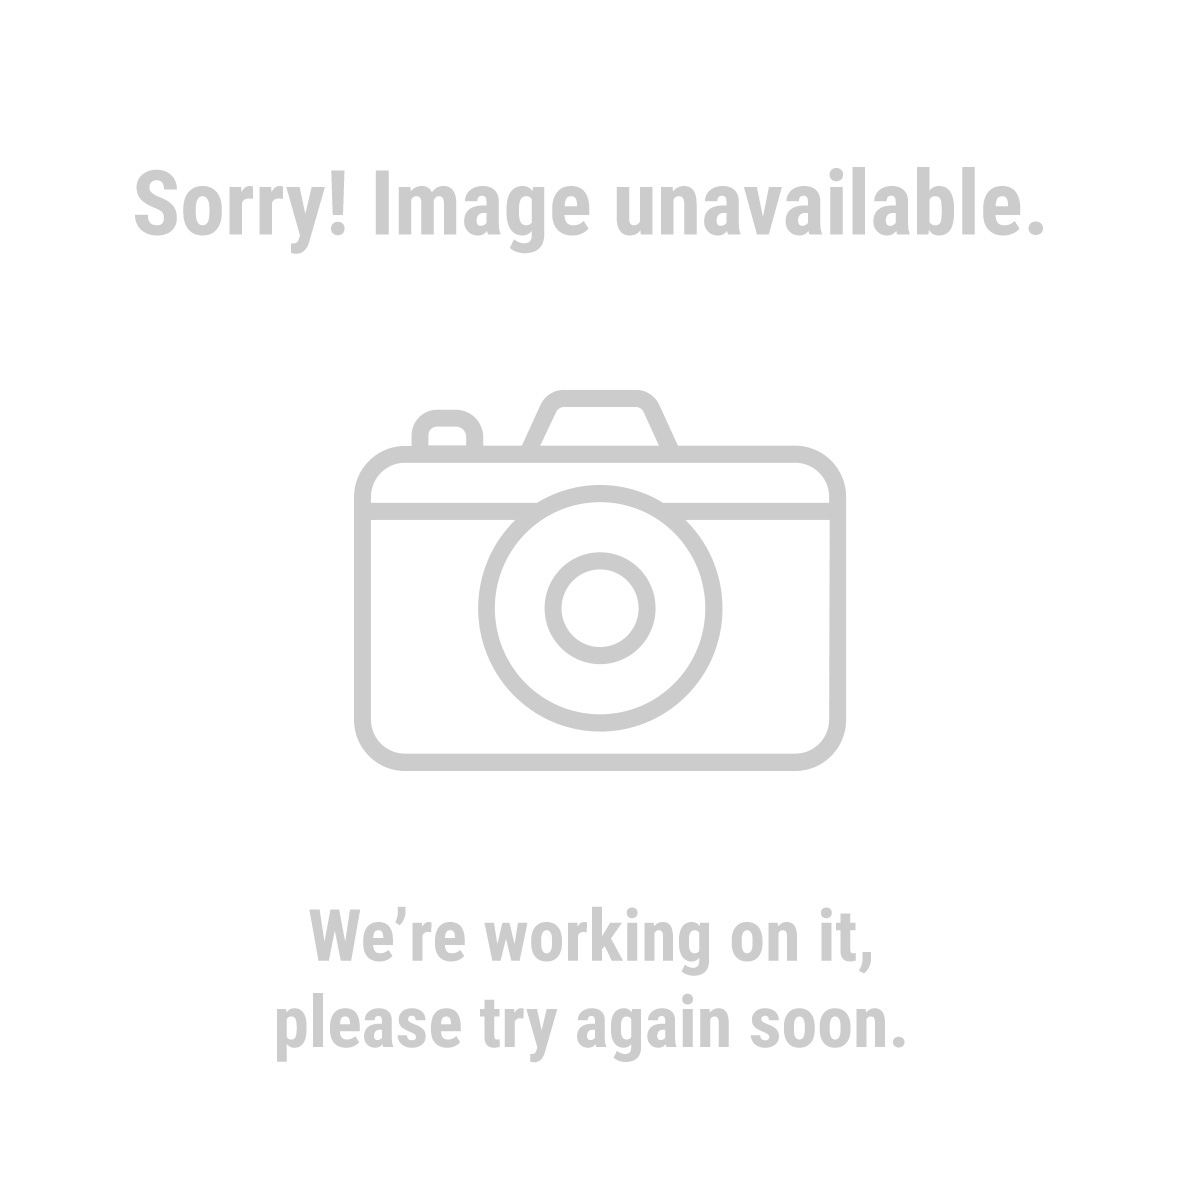 Pittsburgh® 69075 7 Piece Electrician's Screwdriver Set